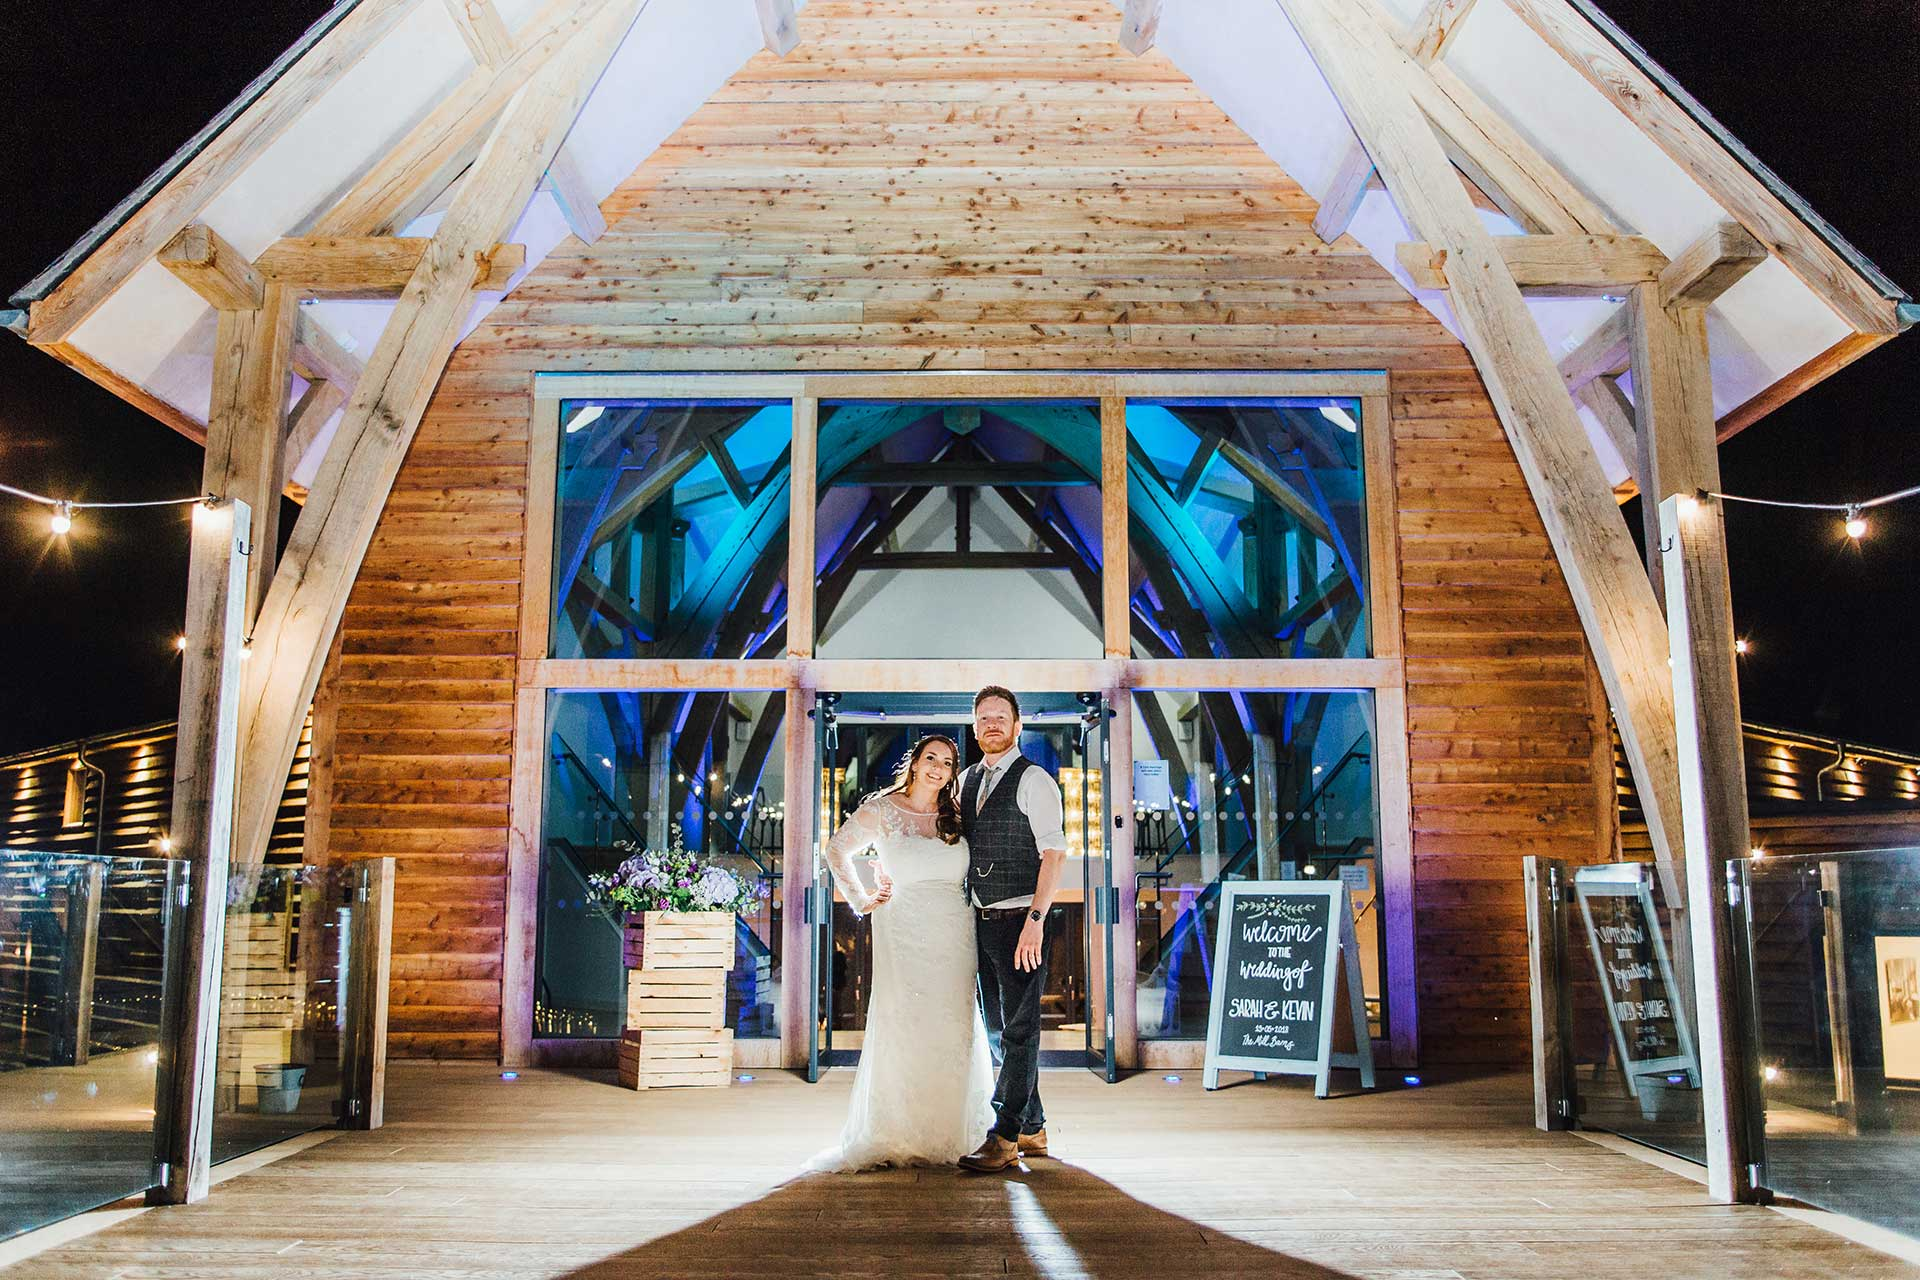 Sarah & Kevin The Mill Barns Photo Booth Hire